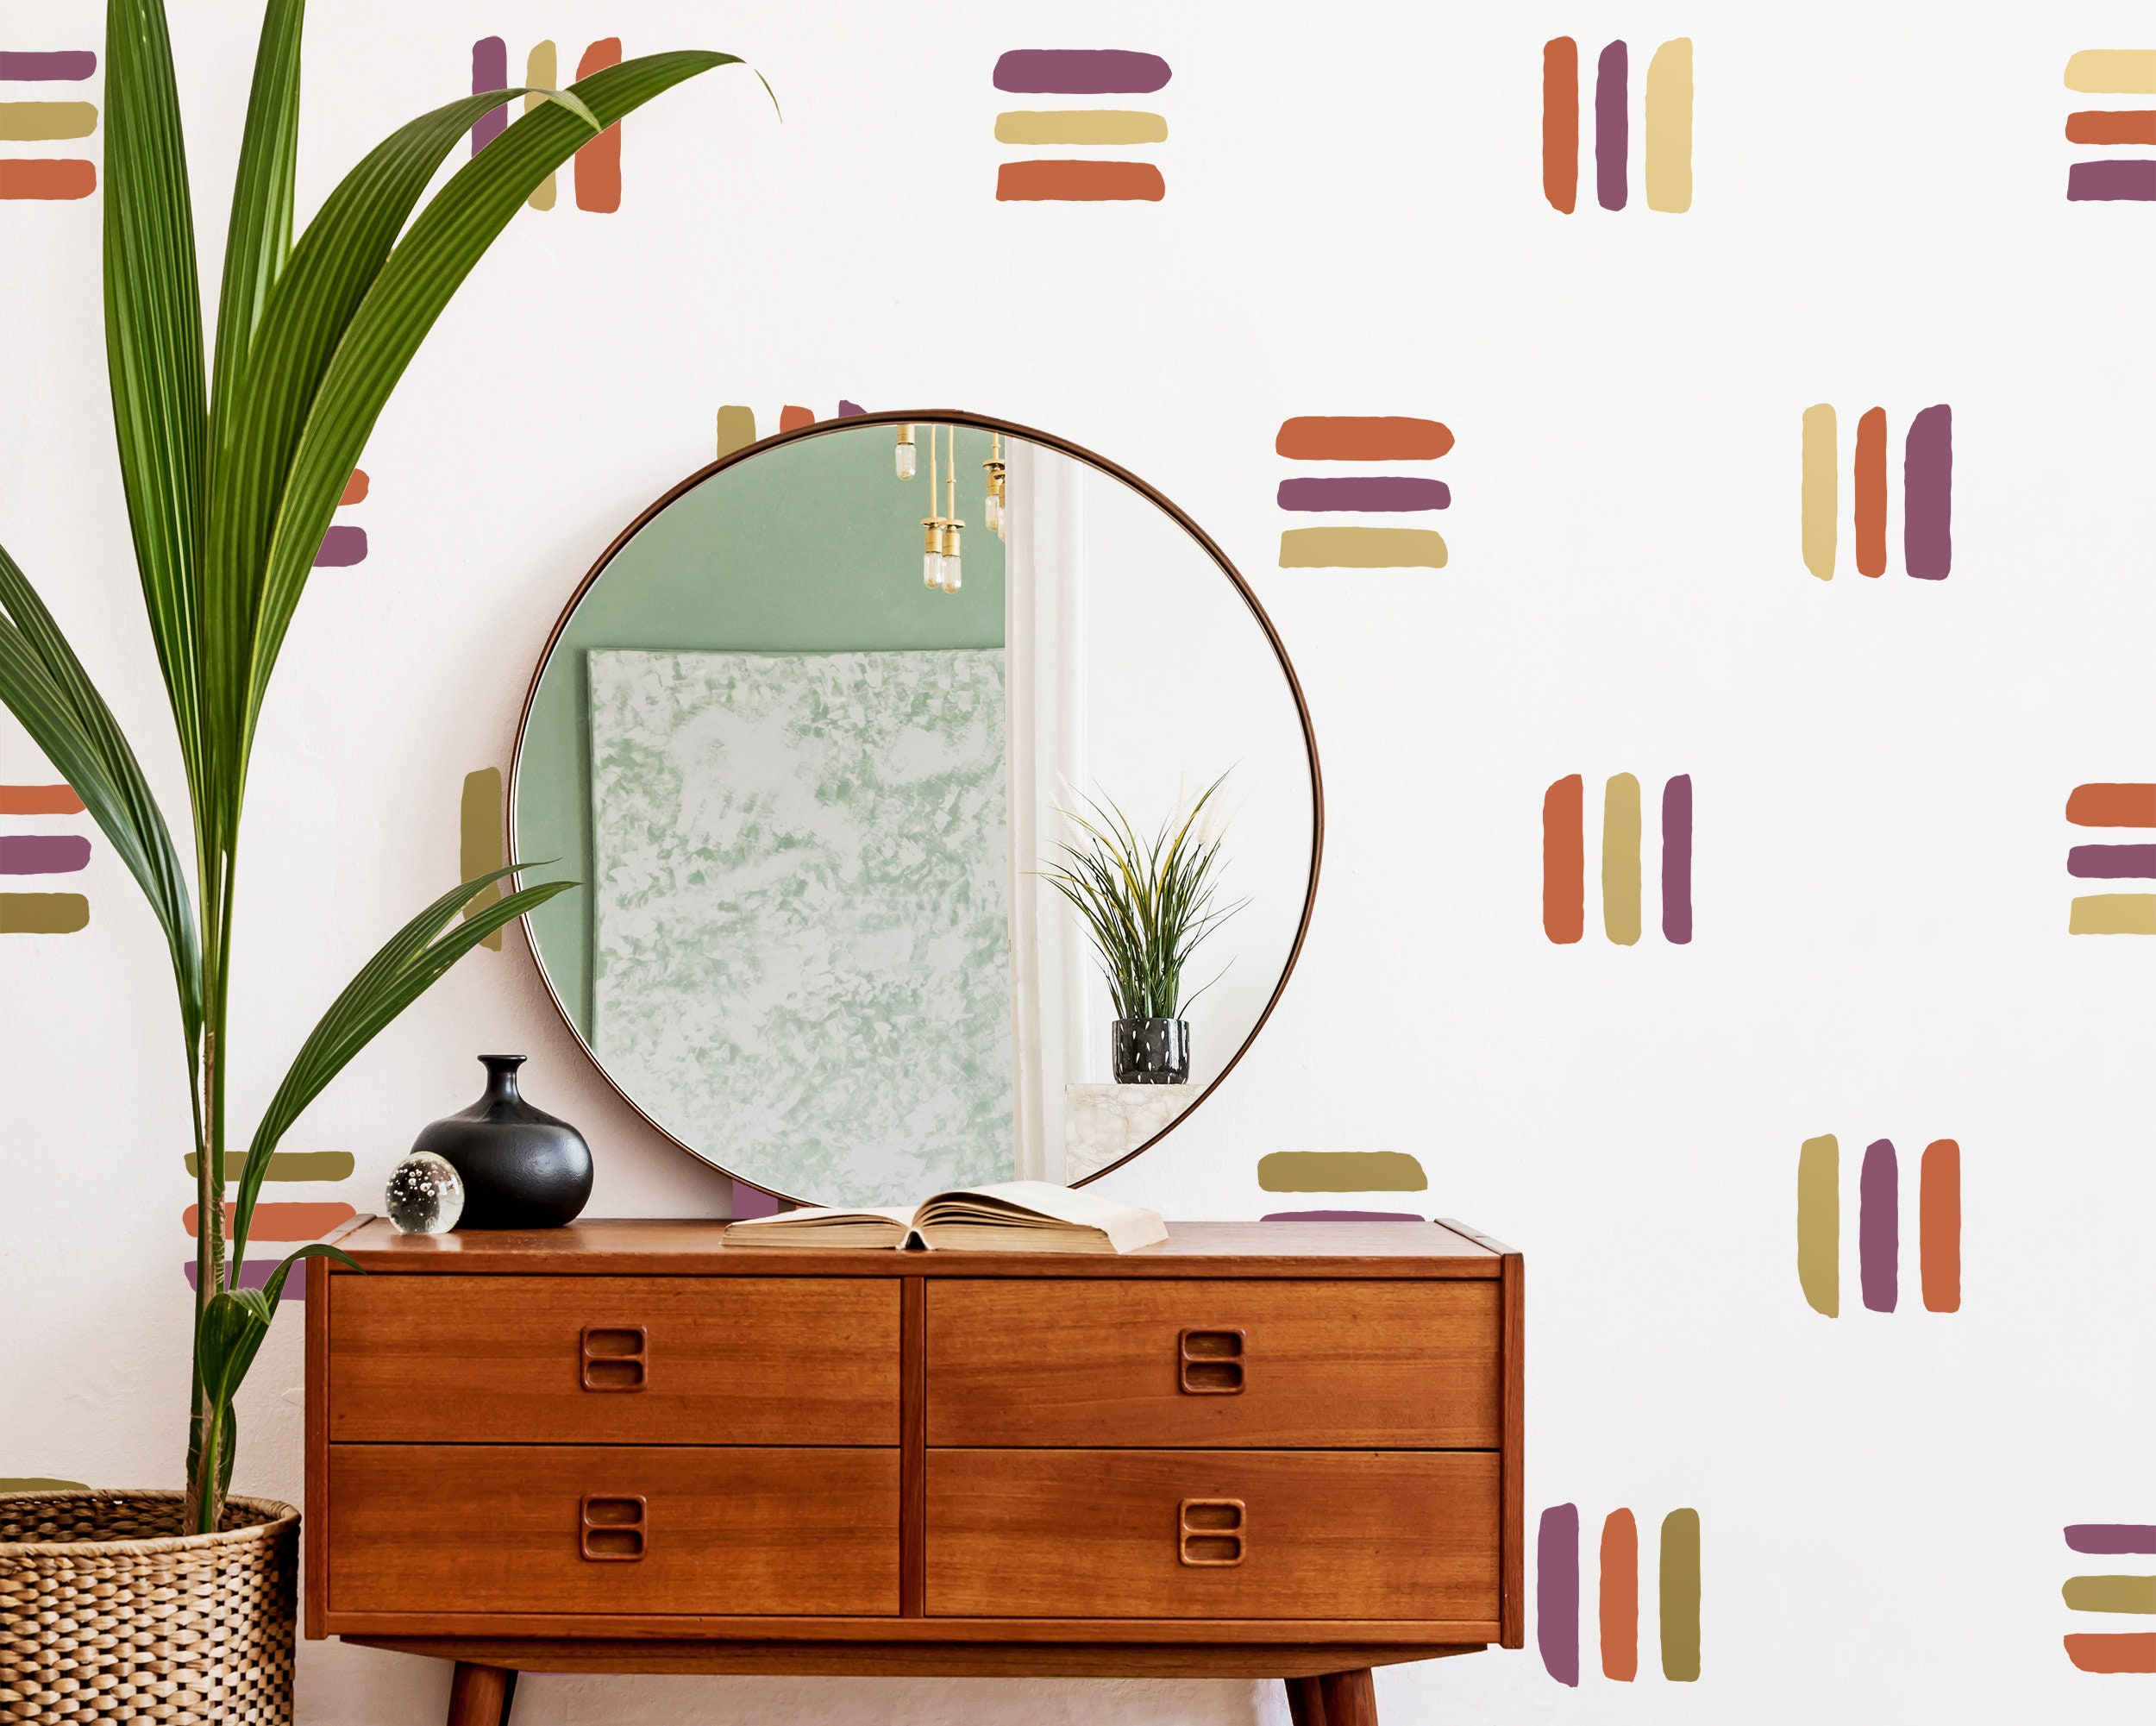 Abstract Line Wall Decals Removable Wall Stickers Modern Geometric Wall Art Bedroom Wall Decor Unique Gift For Home